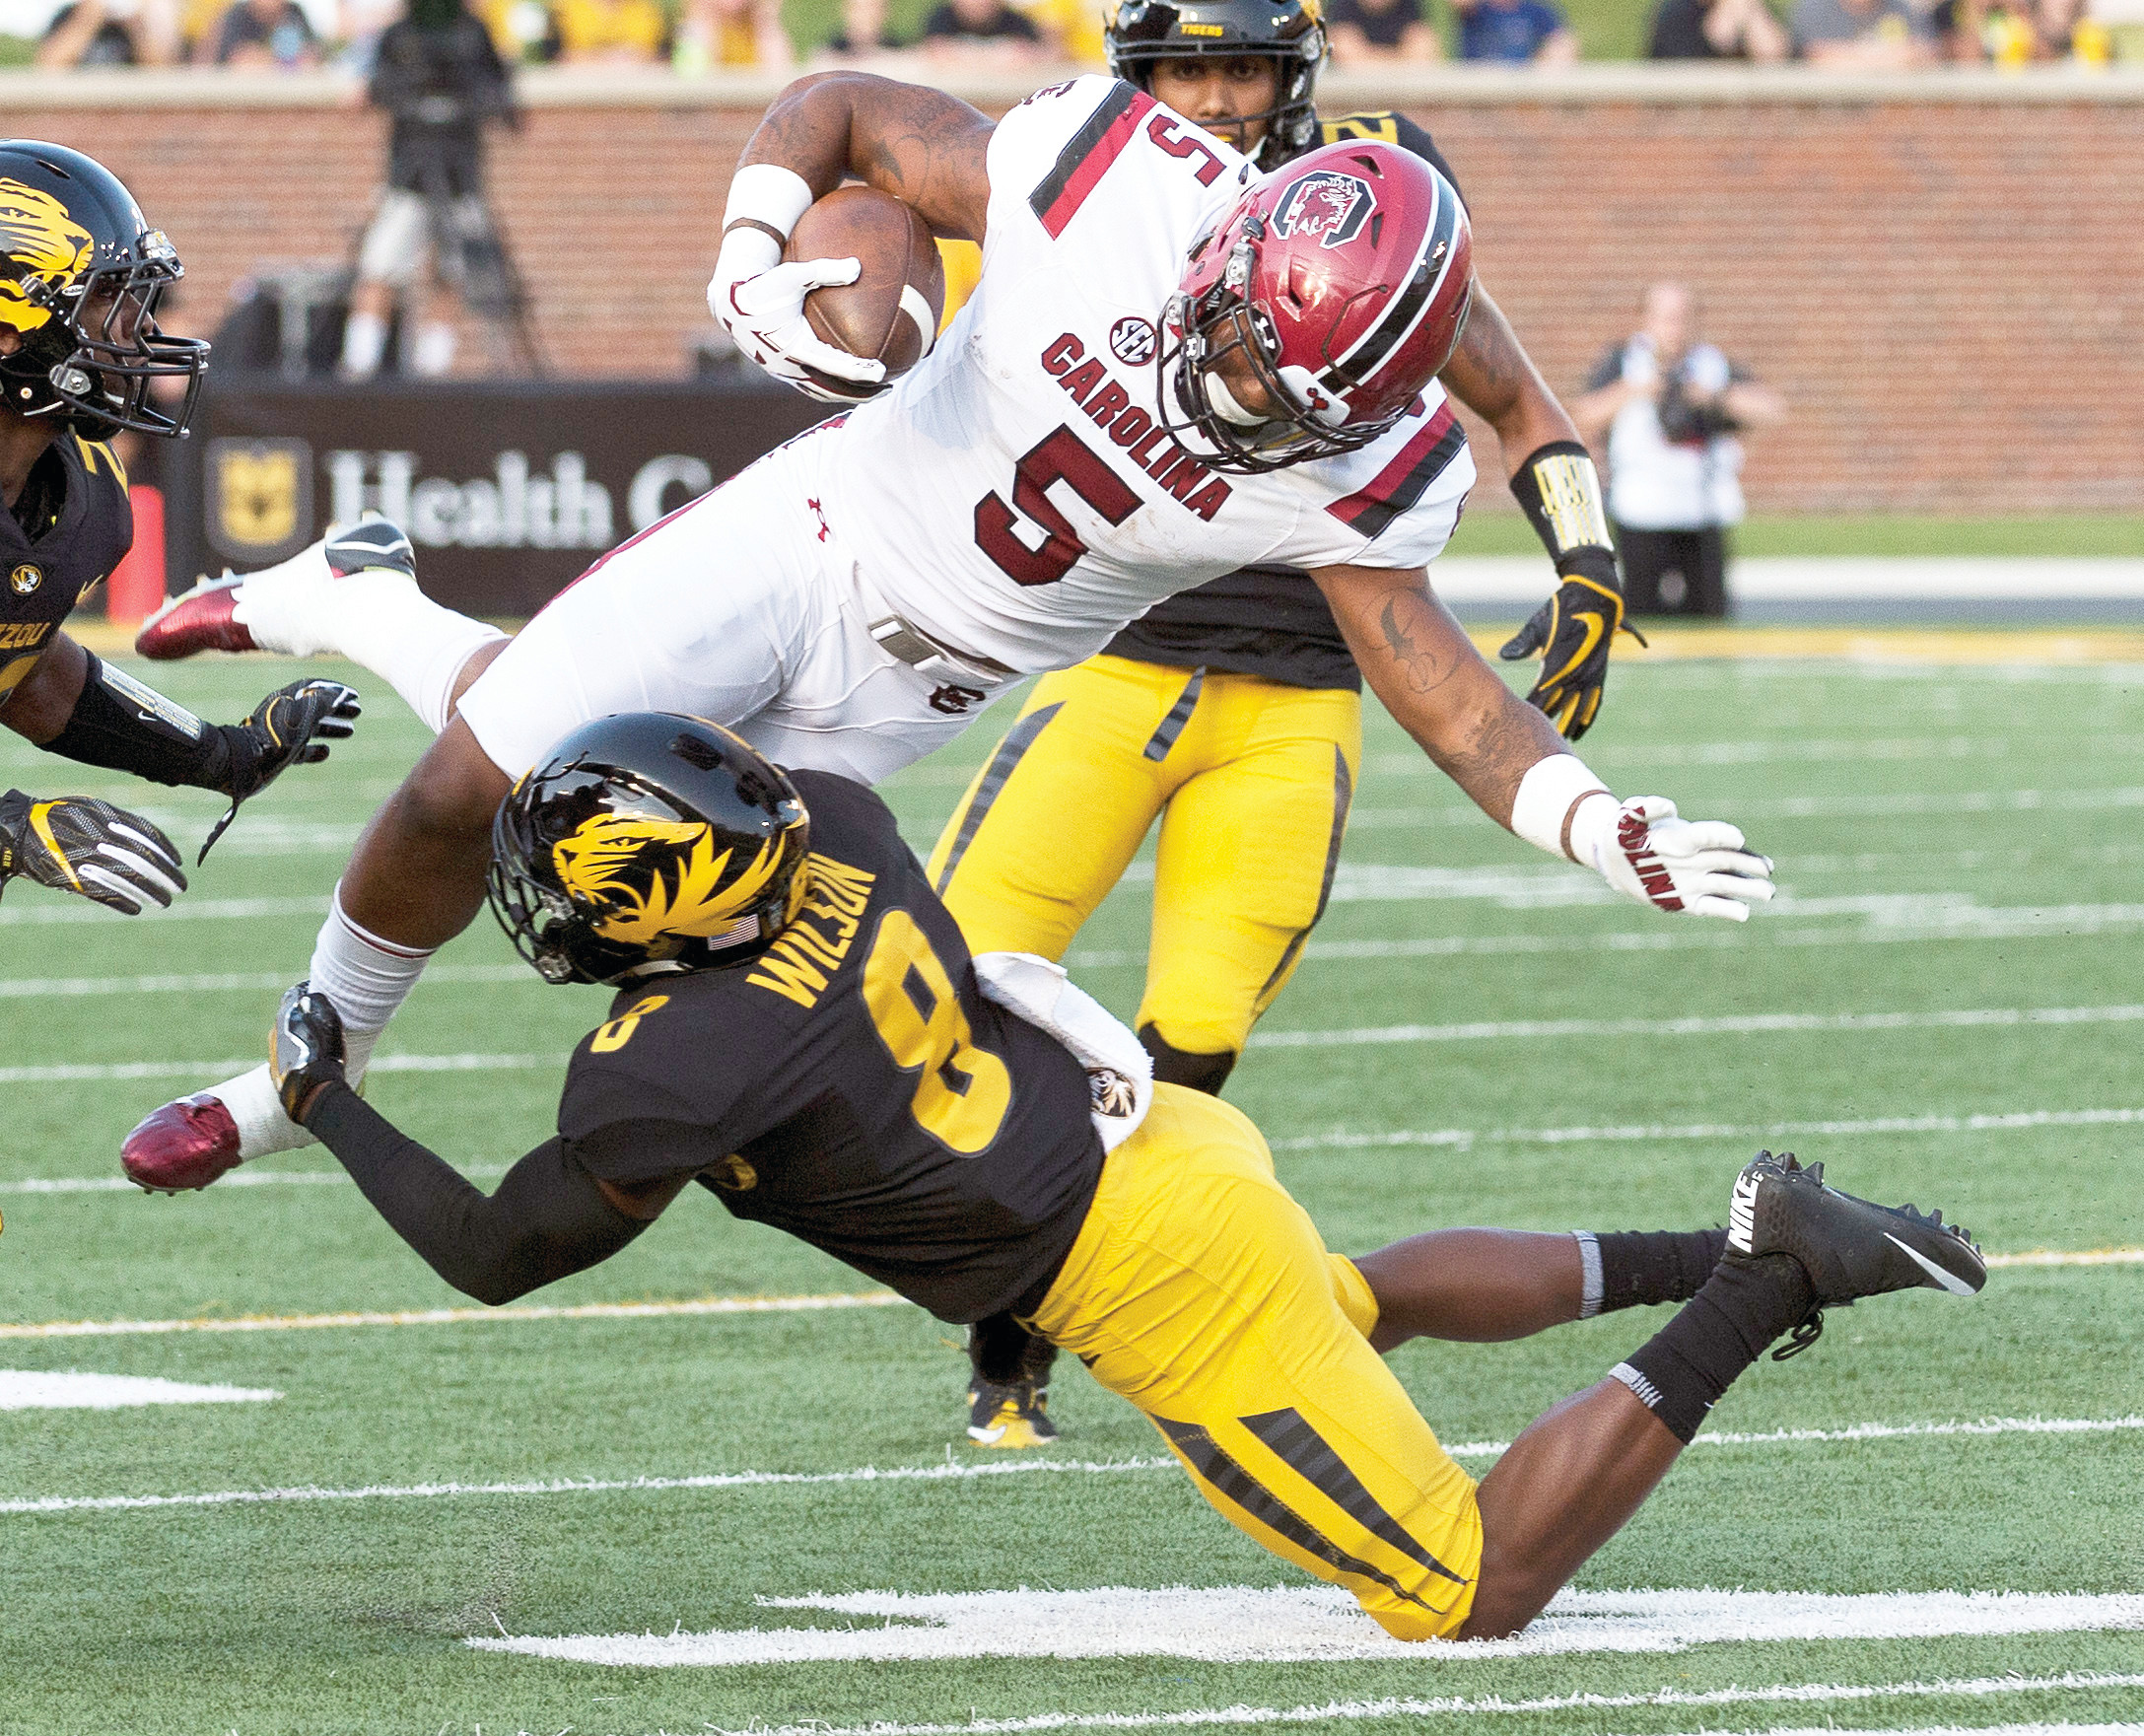 South Carolina running back Rico Dowdle (5) is tackled by Missouri's Thomas Wilson (8) during the Gamecocks' 31-13 victory on Saturday in Columbia, Missouri.